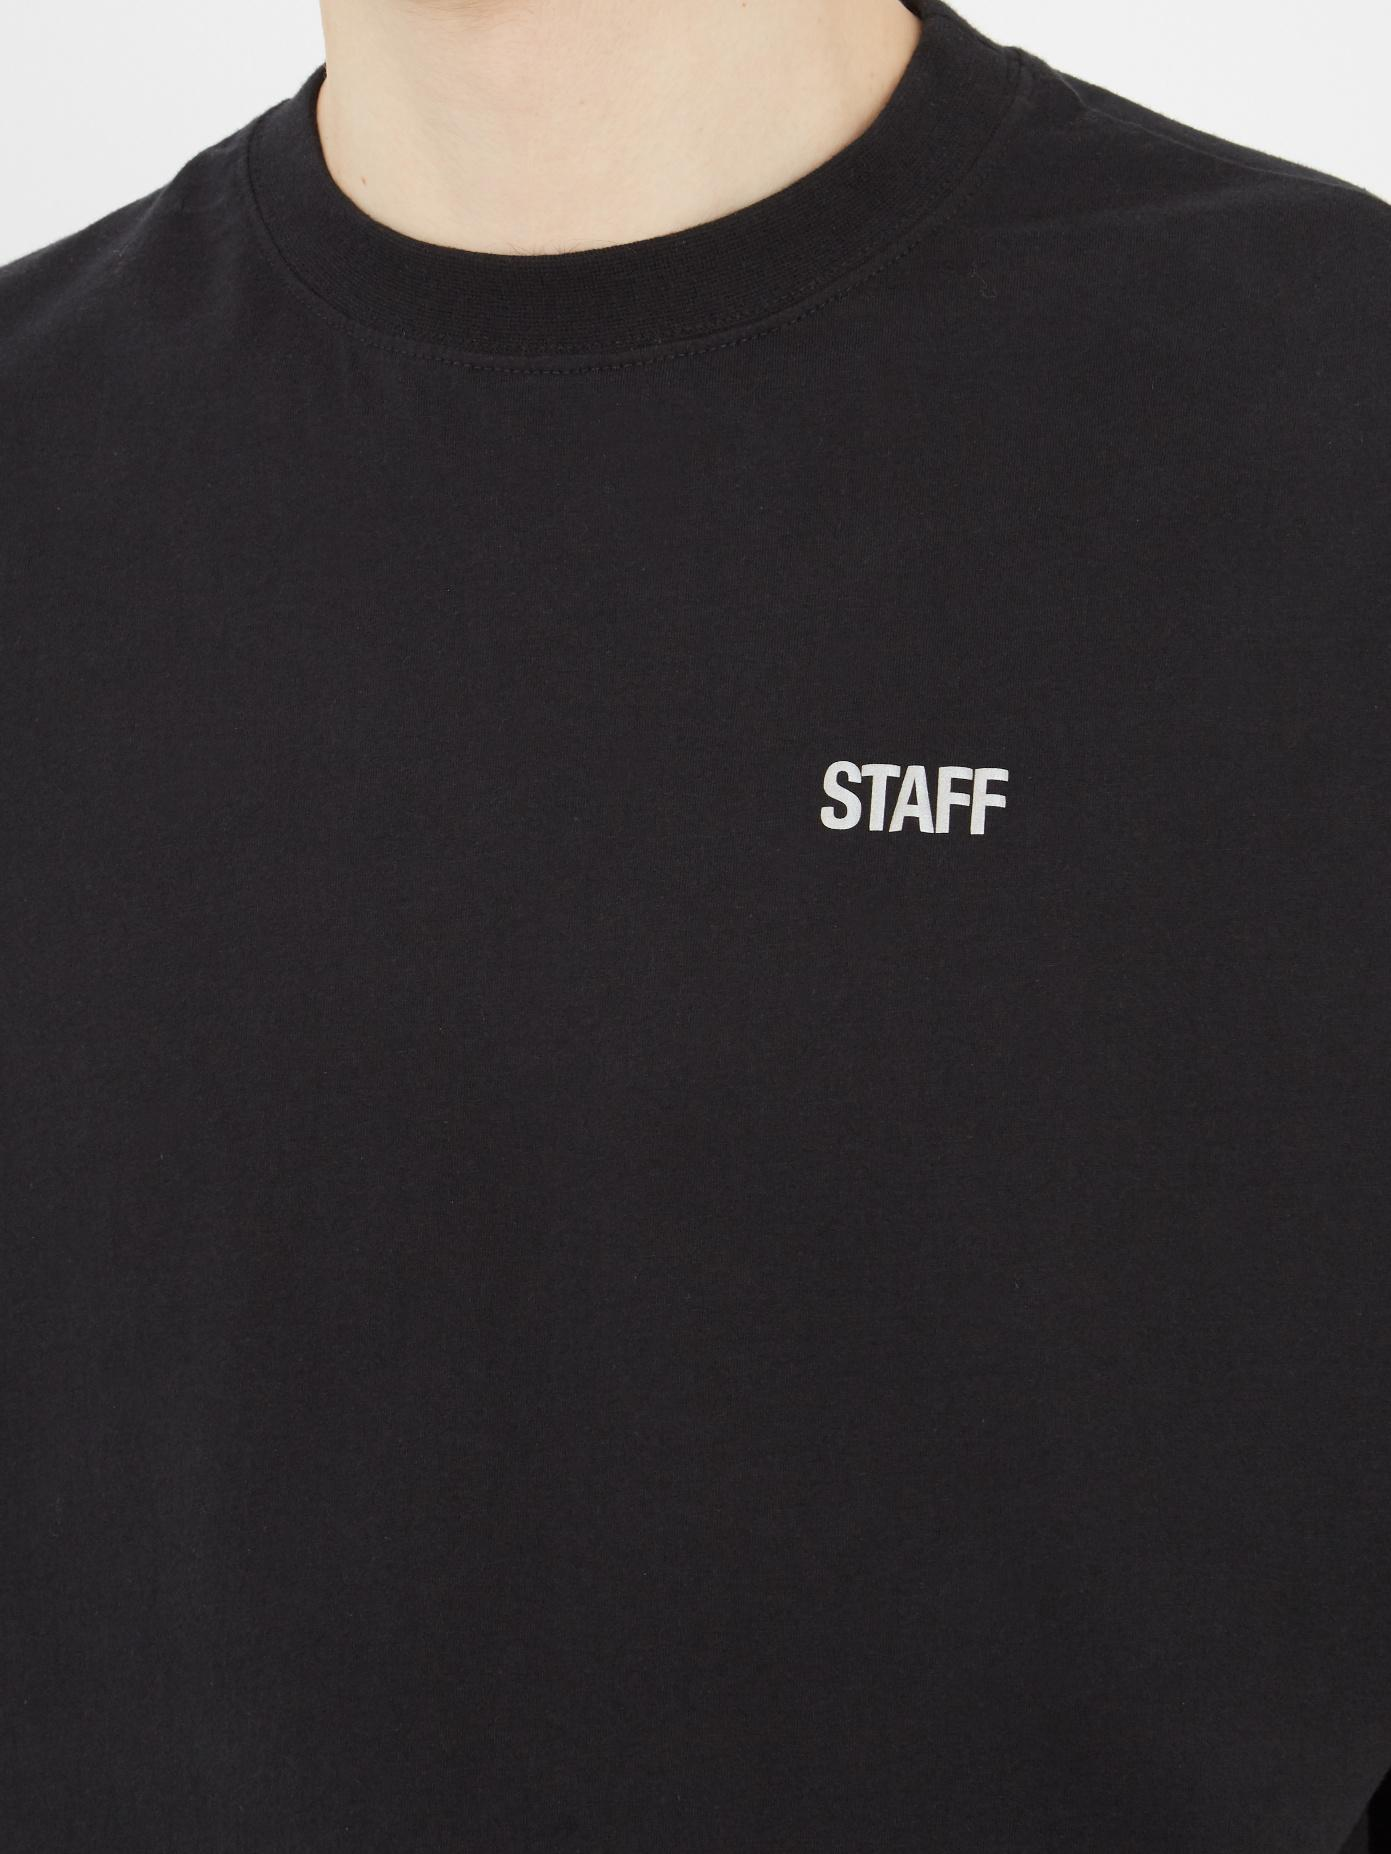 e6ff019ac216 Vetements Staff-print Oversized T-shirt in Black for Men - Lyst